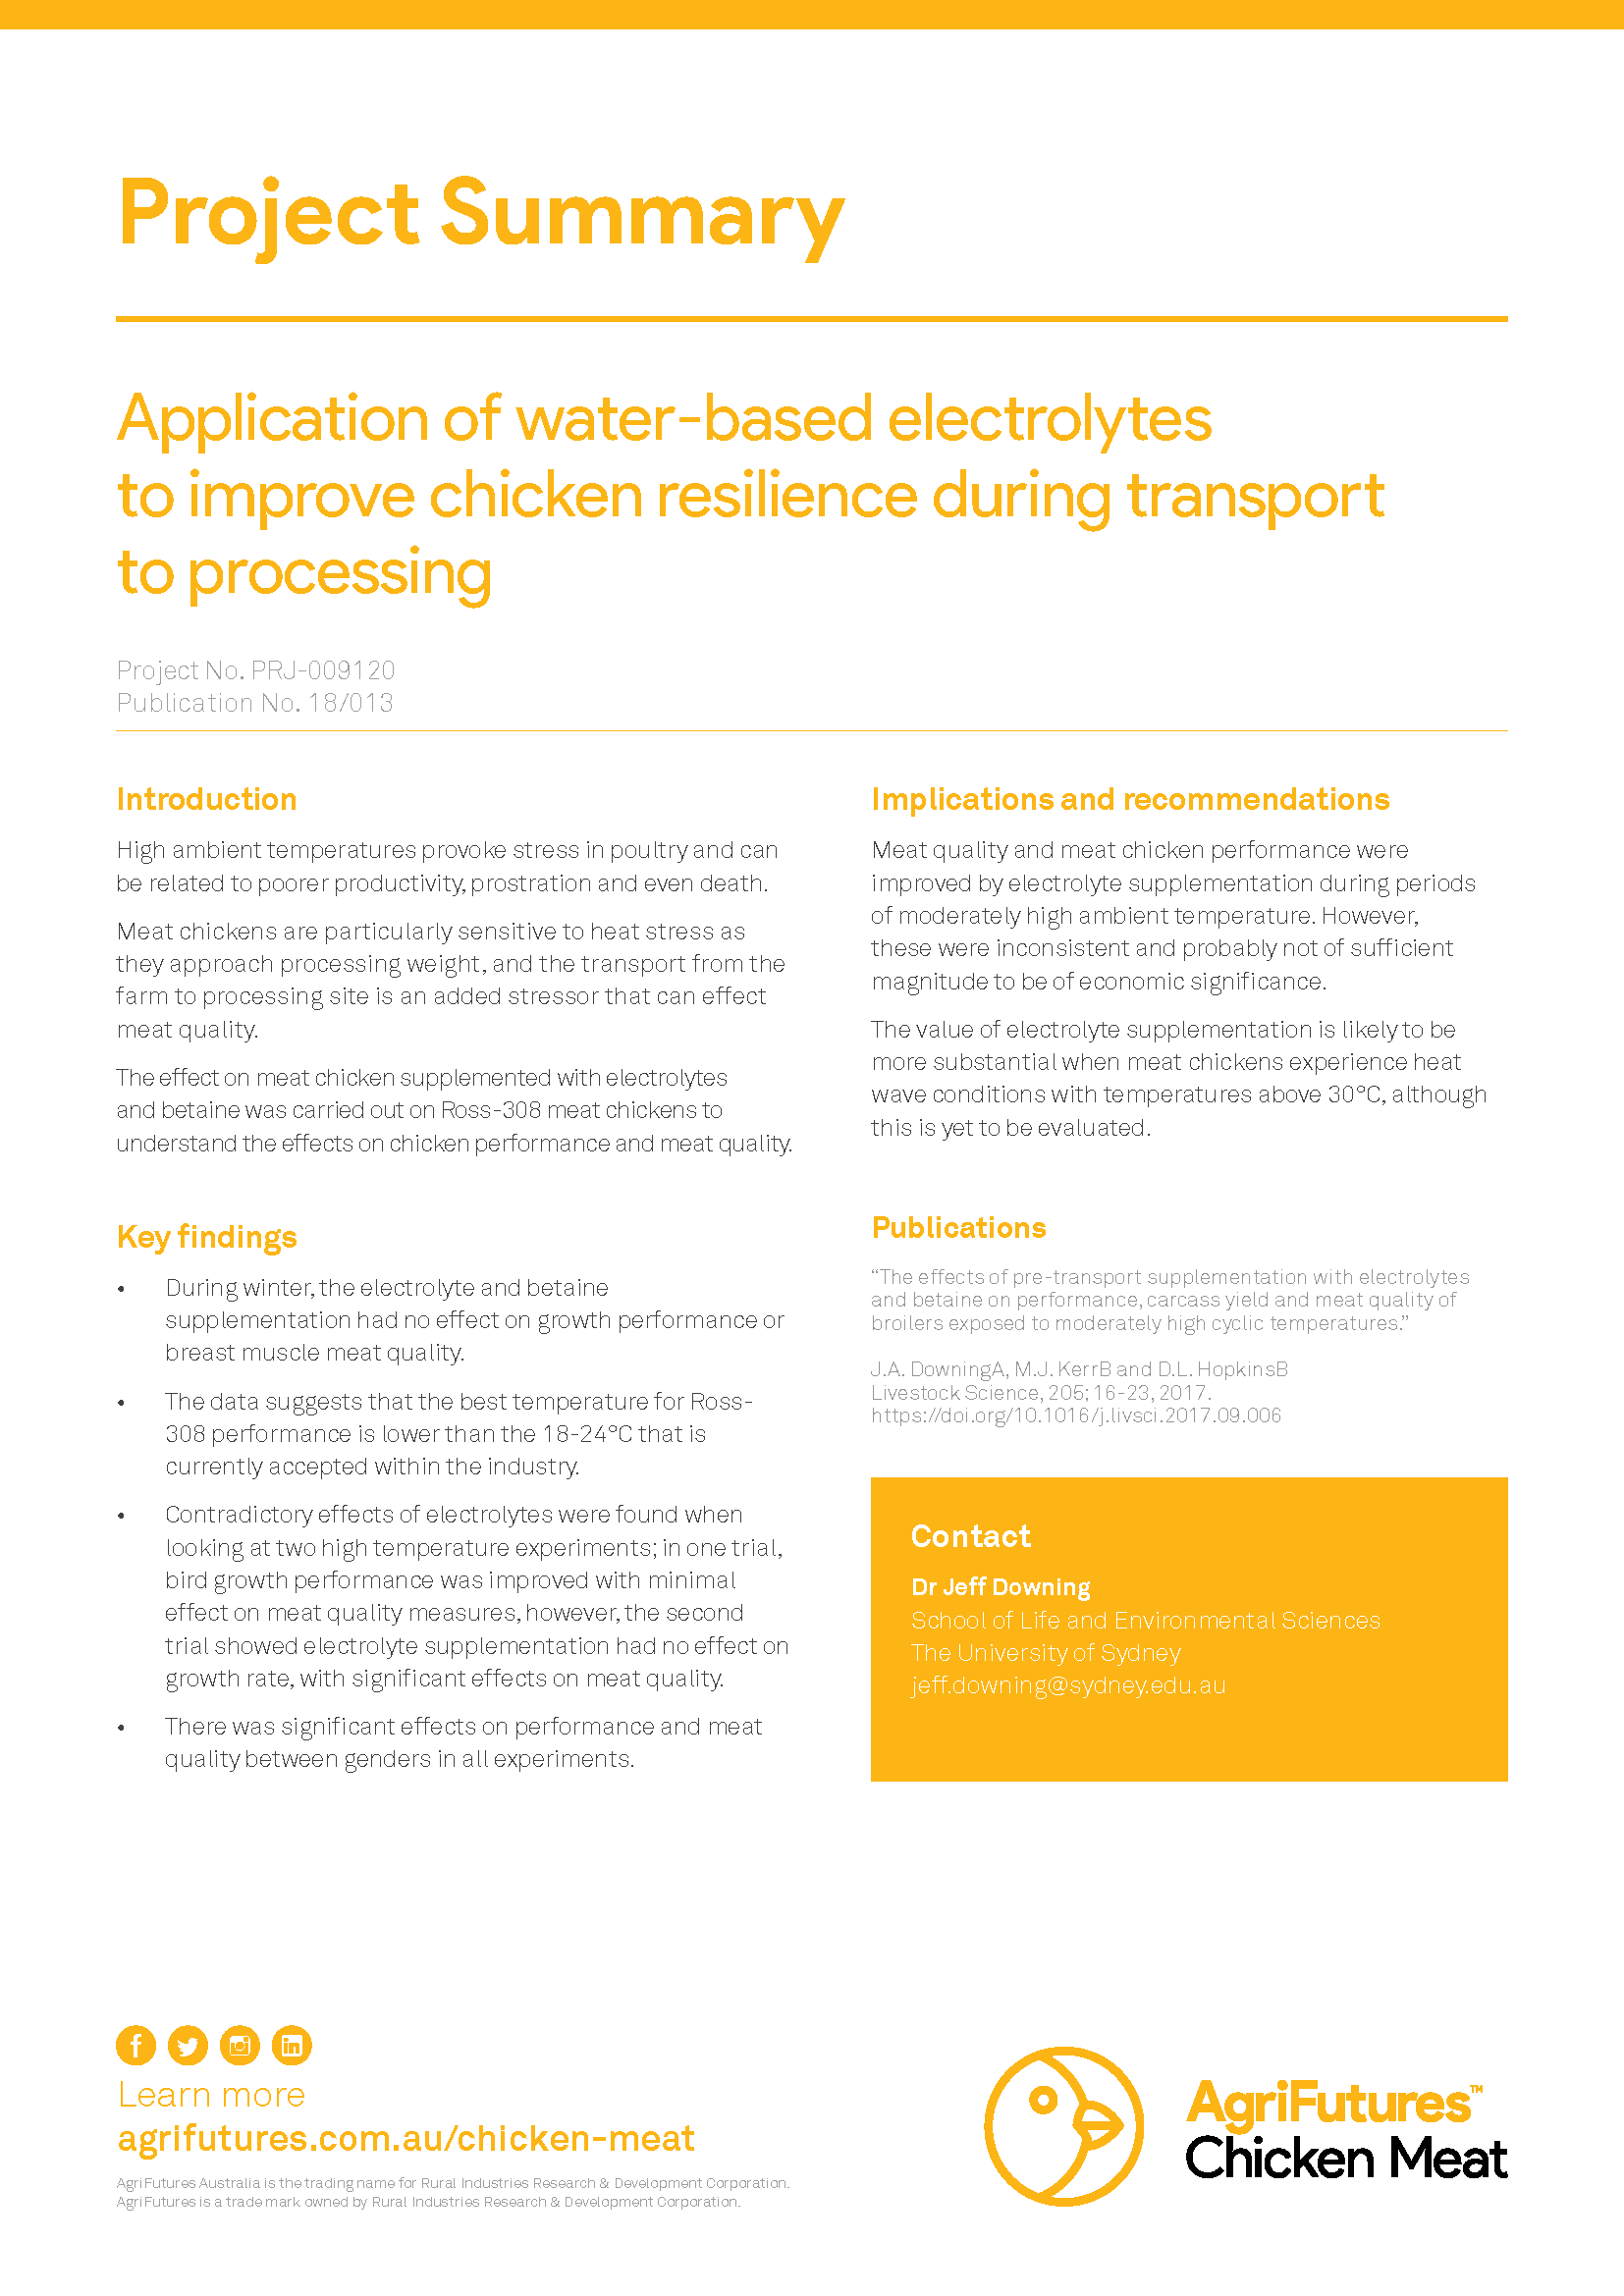 Project summary: Application of water-based electrolytes to improve chicken resilience during transport to processing - image